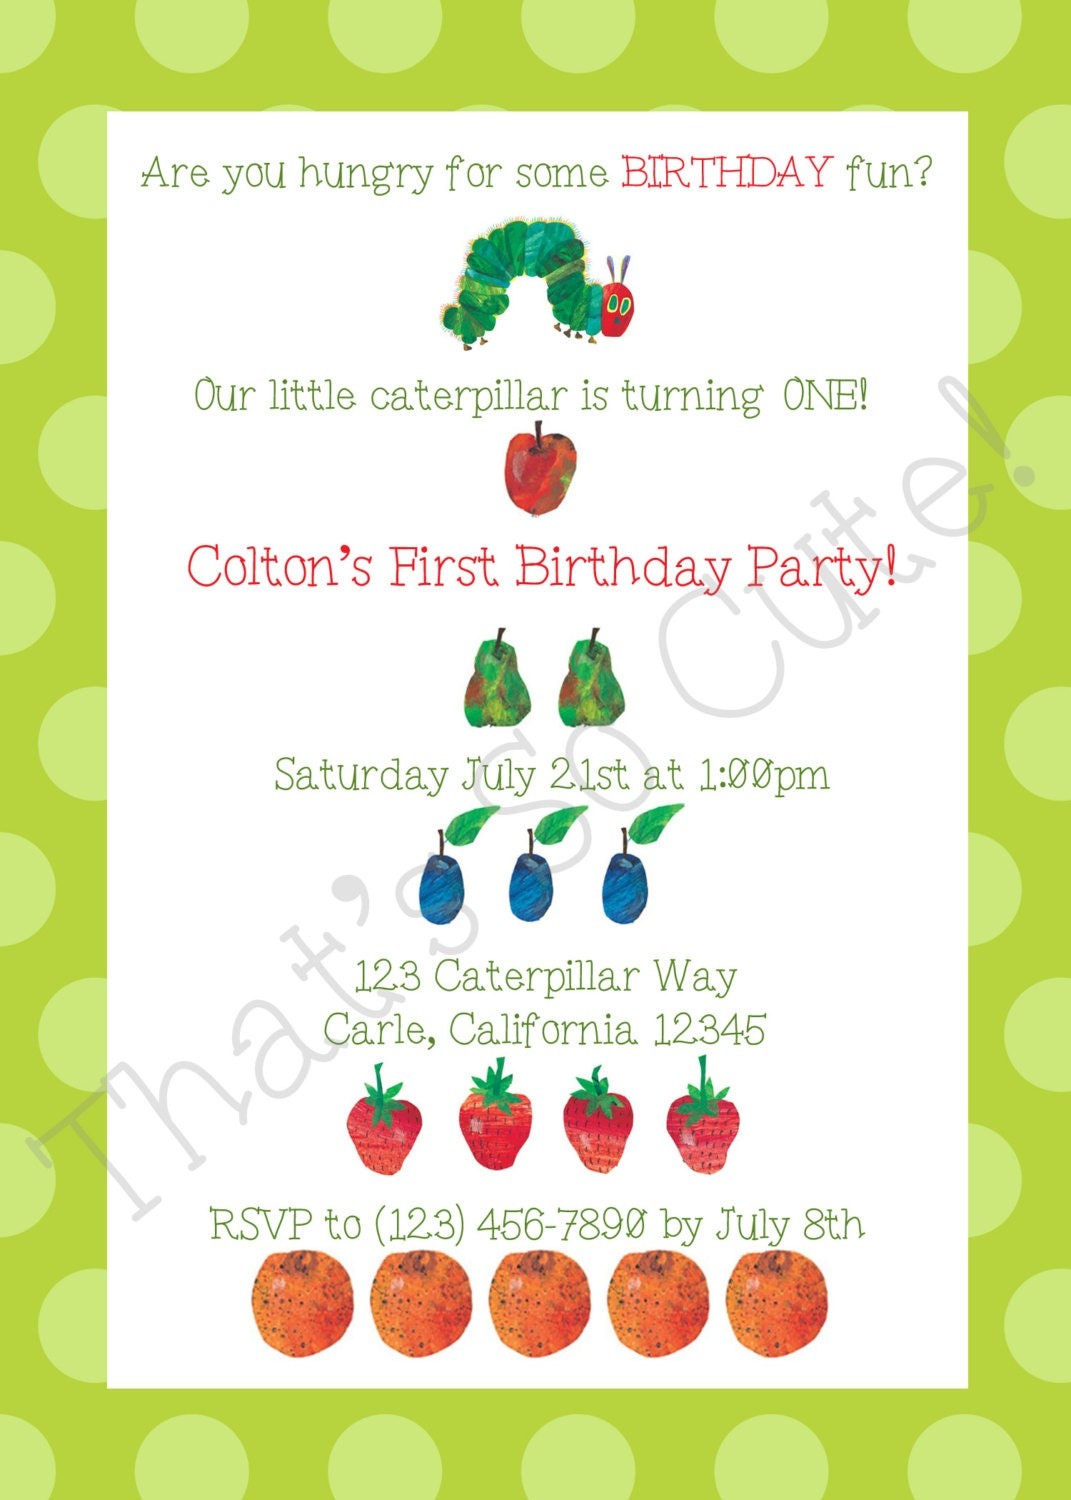 Free caterpillar invitations templates party invitations for Very hungry caterpillar templates free